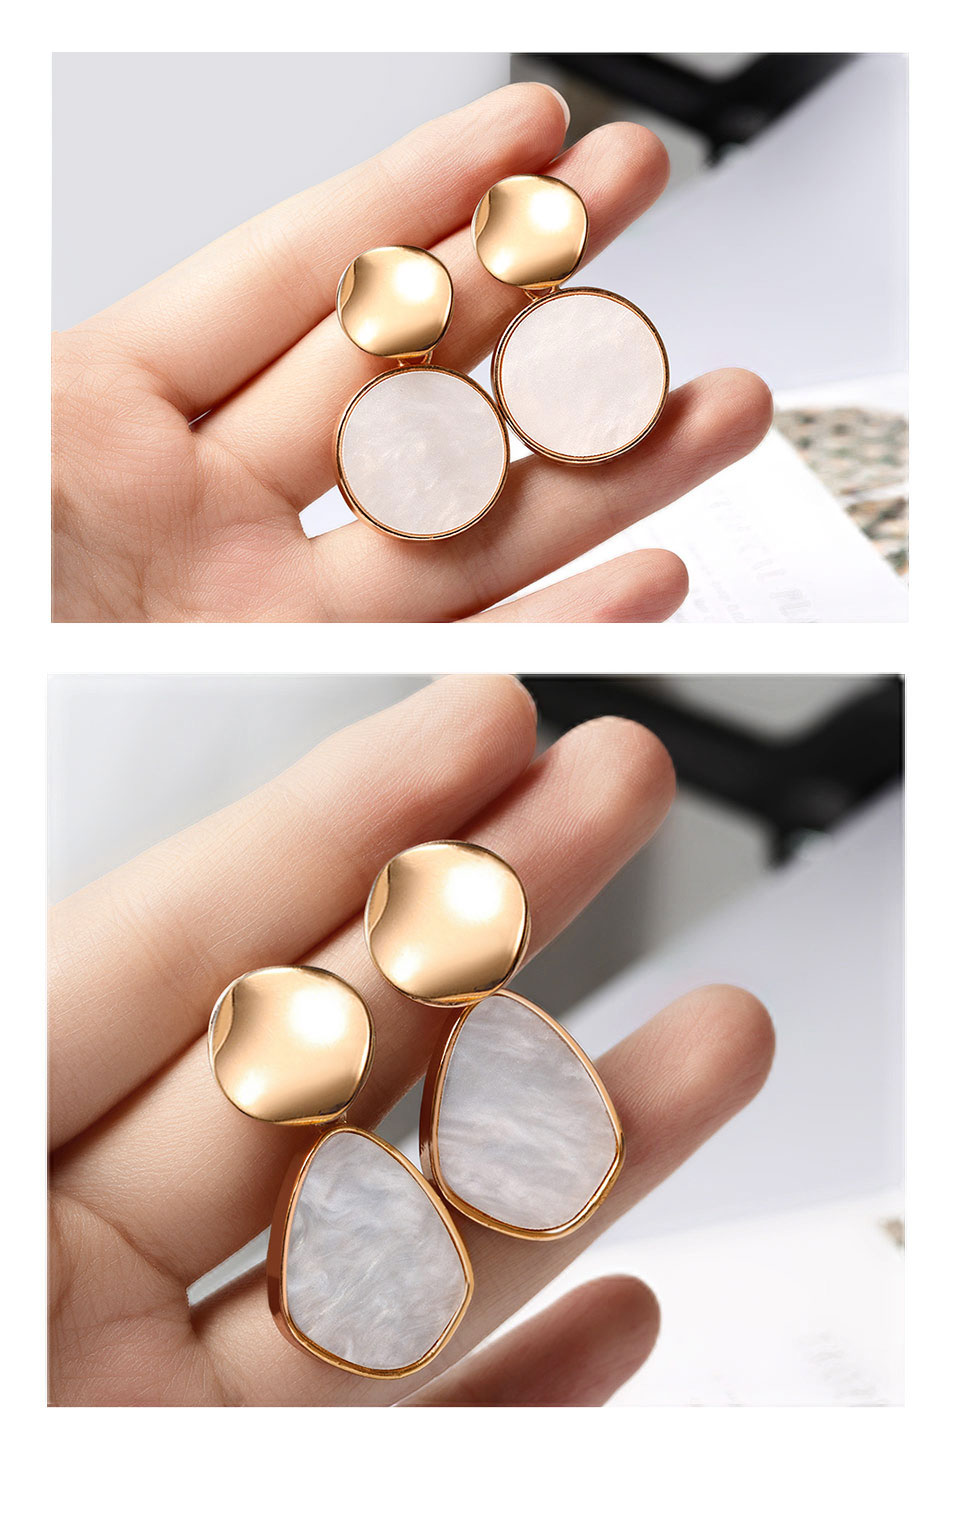 POXAM Hot Korean Gold Color Earrings 19 for Women Fashion Statement Jewelry Leaf Face Metal Acrylic Ear Dangle Drop Earing 5